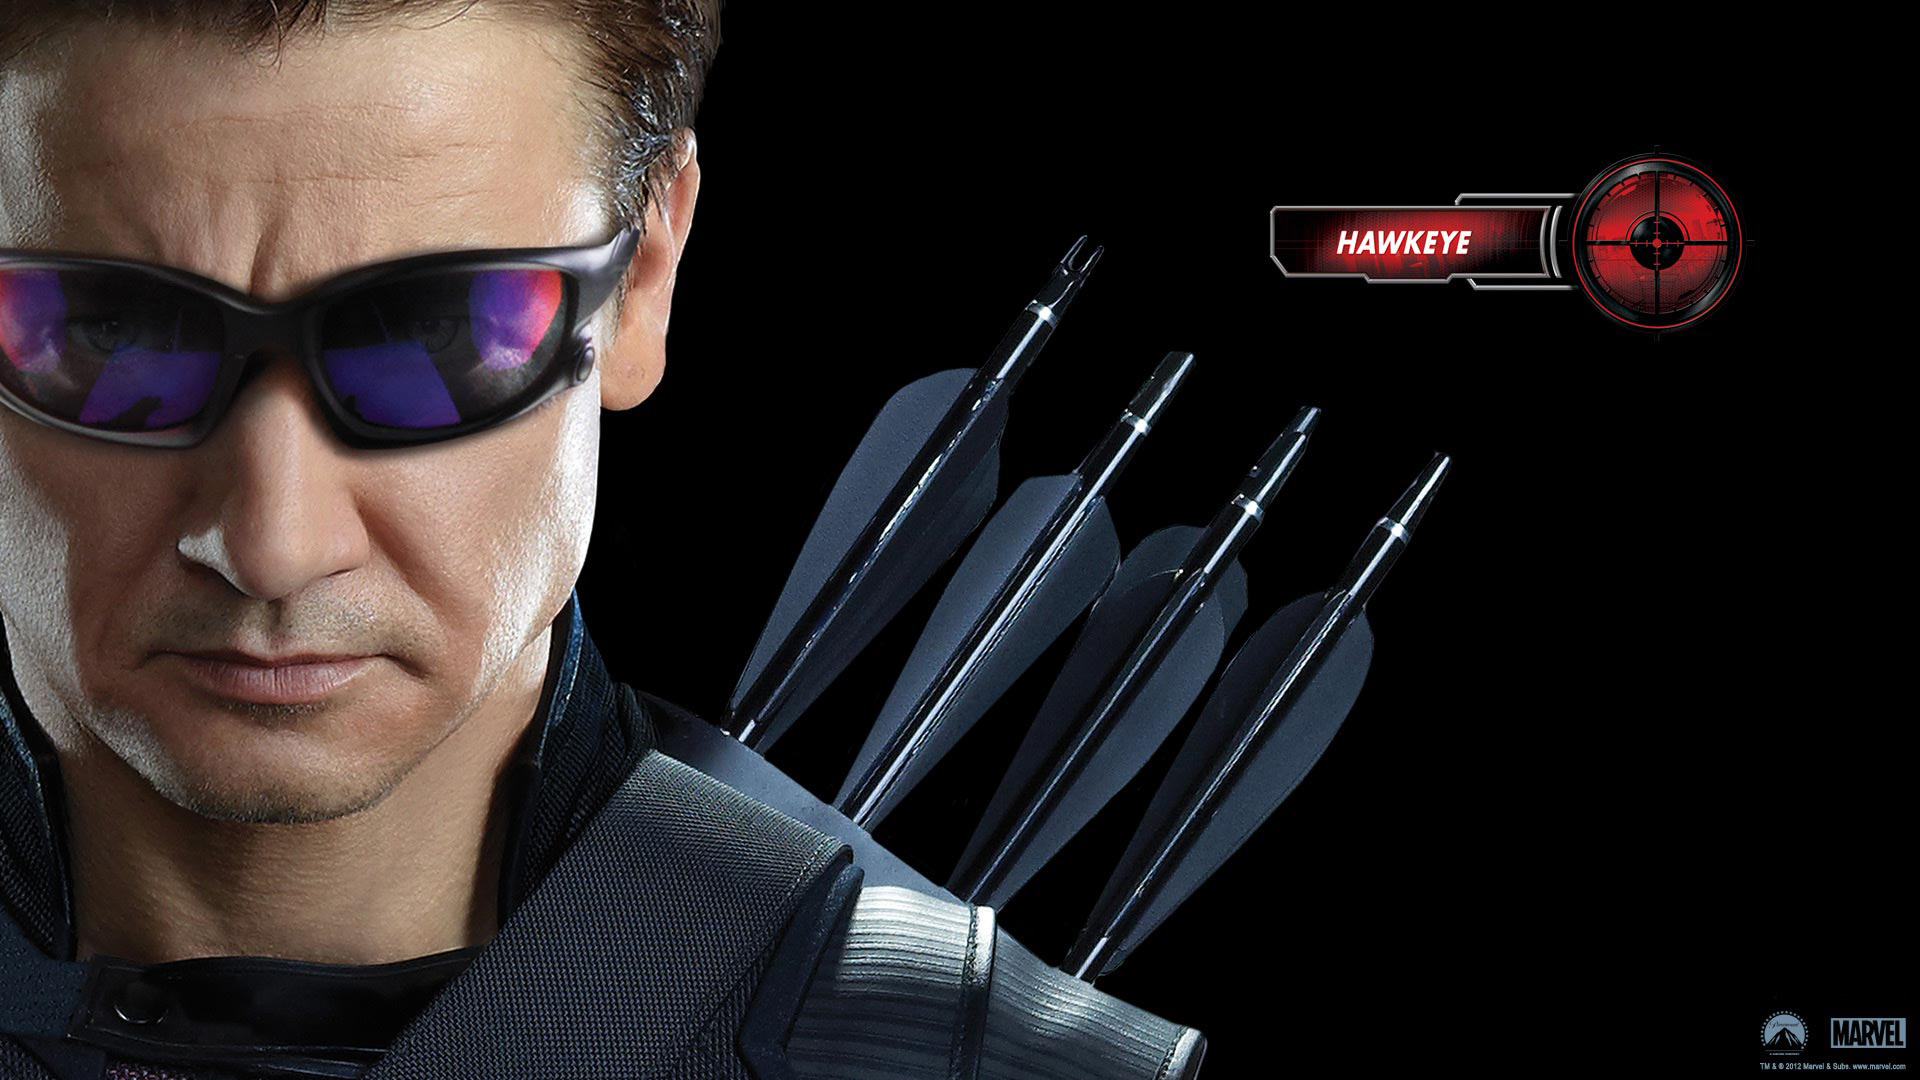 Hawkeye in Avengers Movie 176.95 Kb